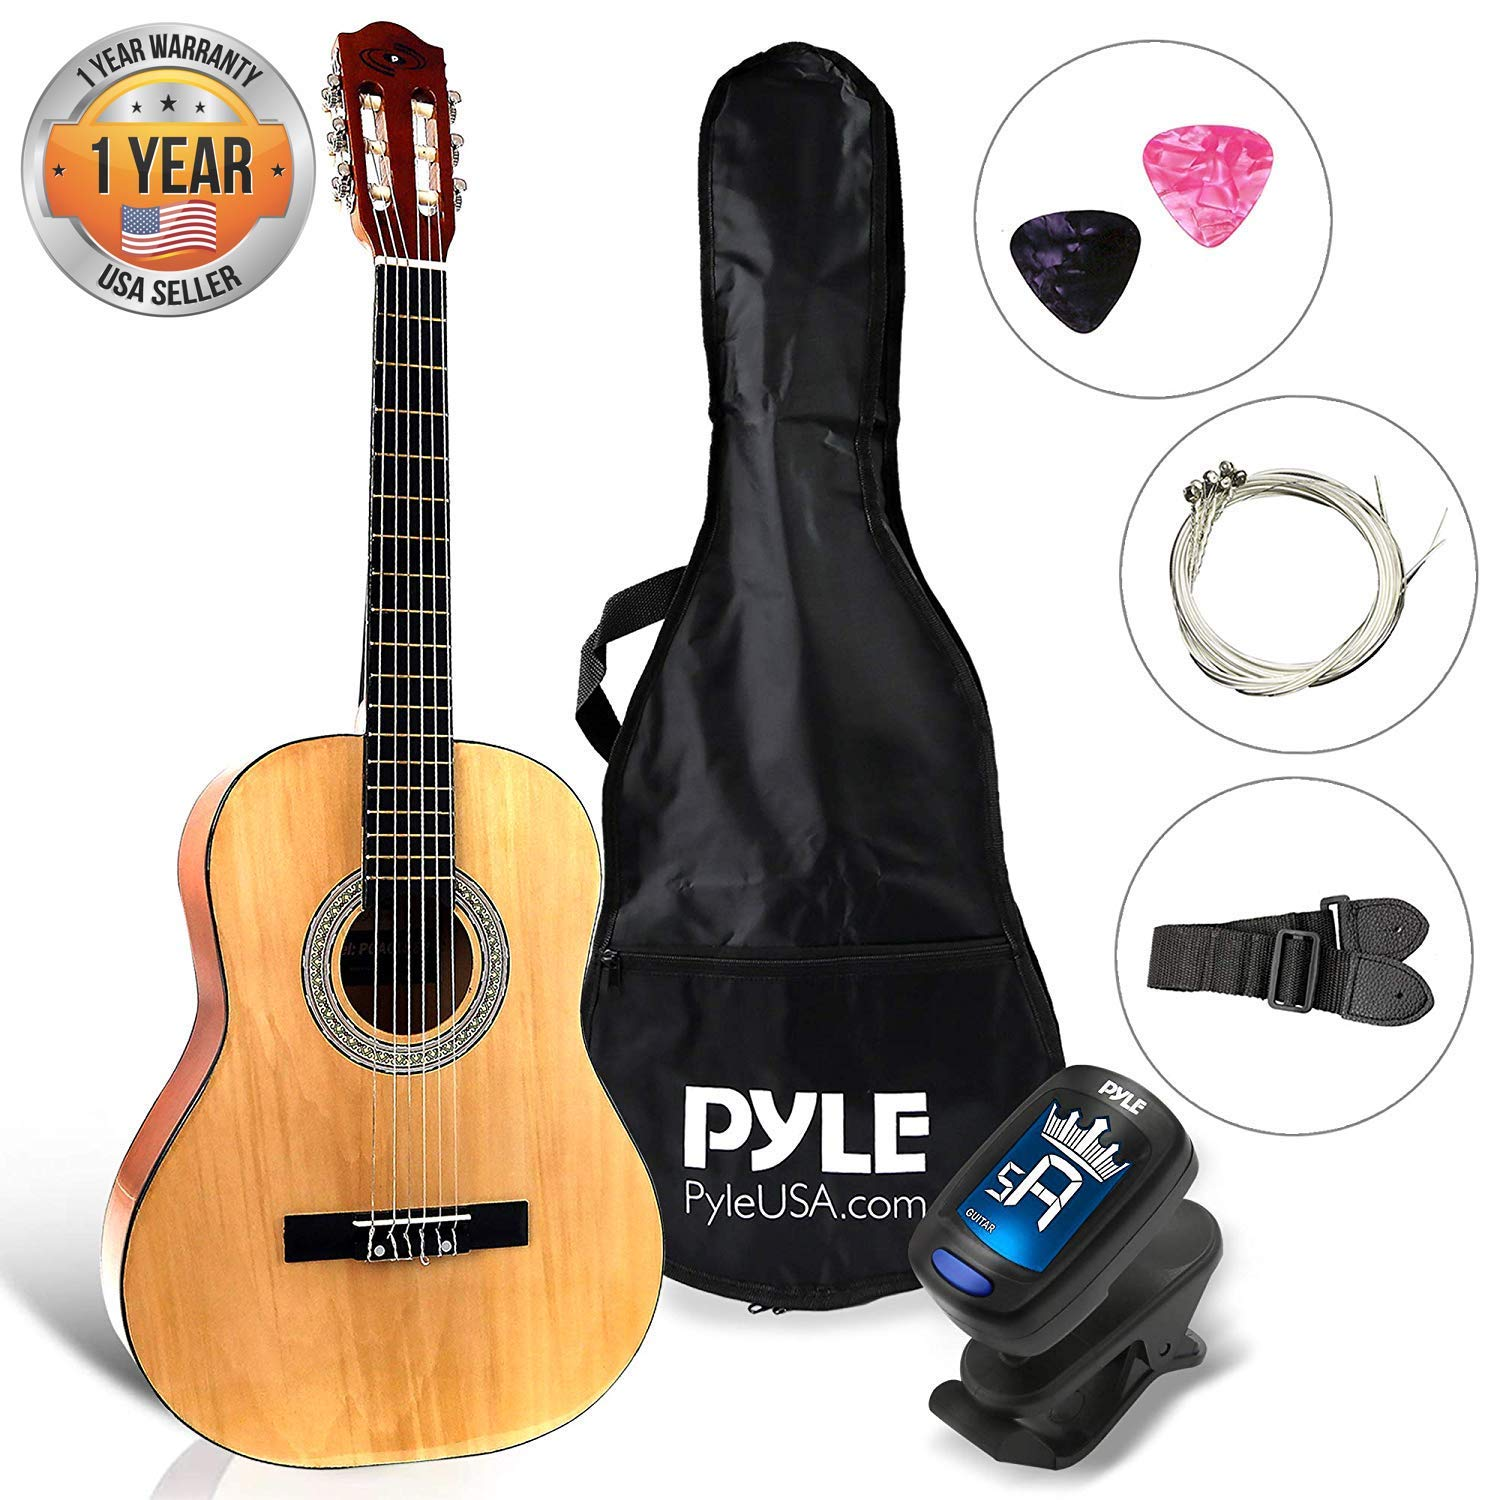 "Beginner 36"" Classical Acoustic Guitar - 6 String Junior Linden Wood Traditional Guitar w/Wooden Fretboard, Case Bag, Tuner, Nylon Strings, Picks, Cloth, Great for Beginners, Children - Pyle PGACLS82 by Pyle (Image #1)"